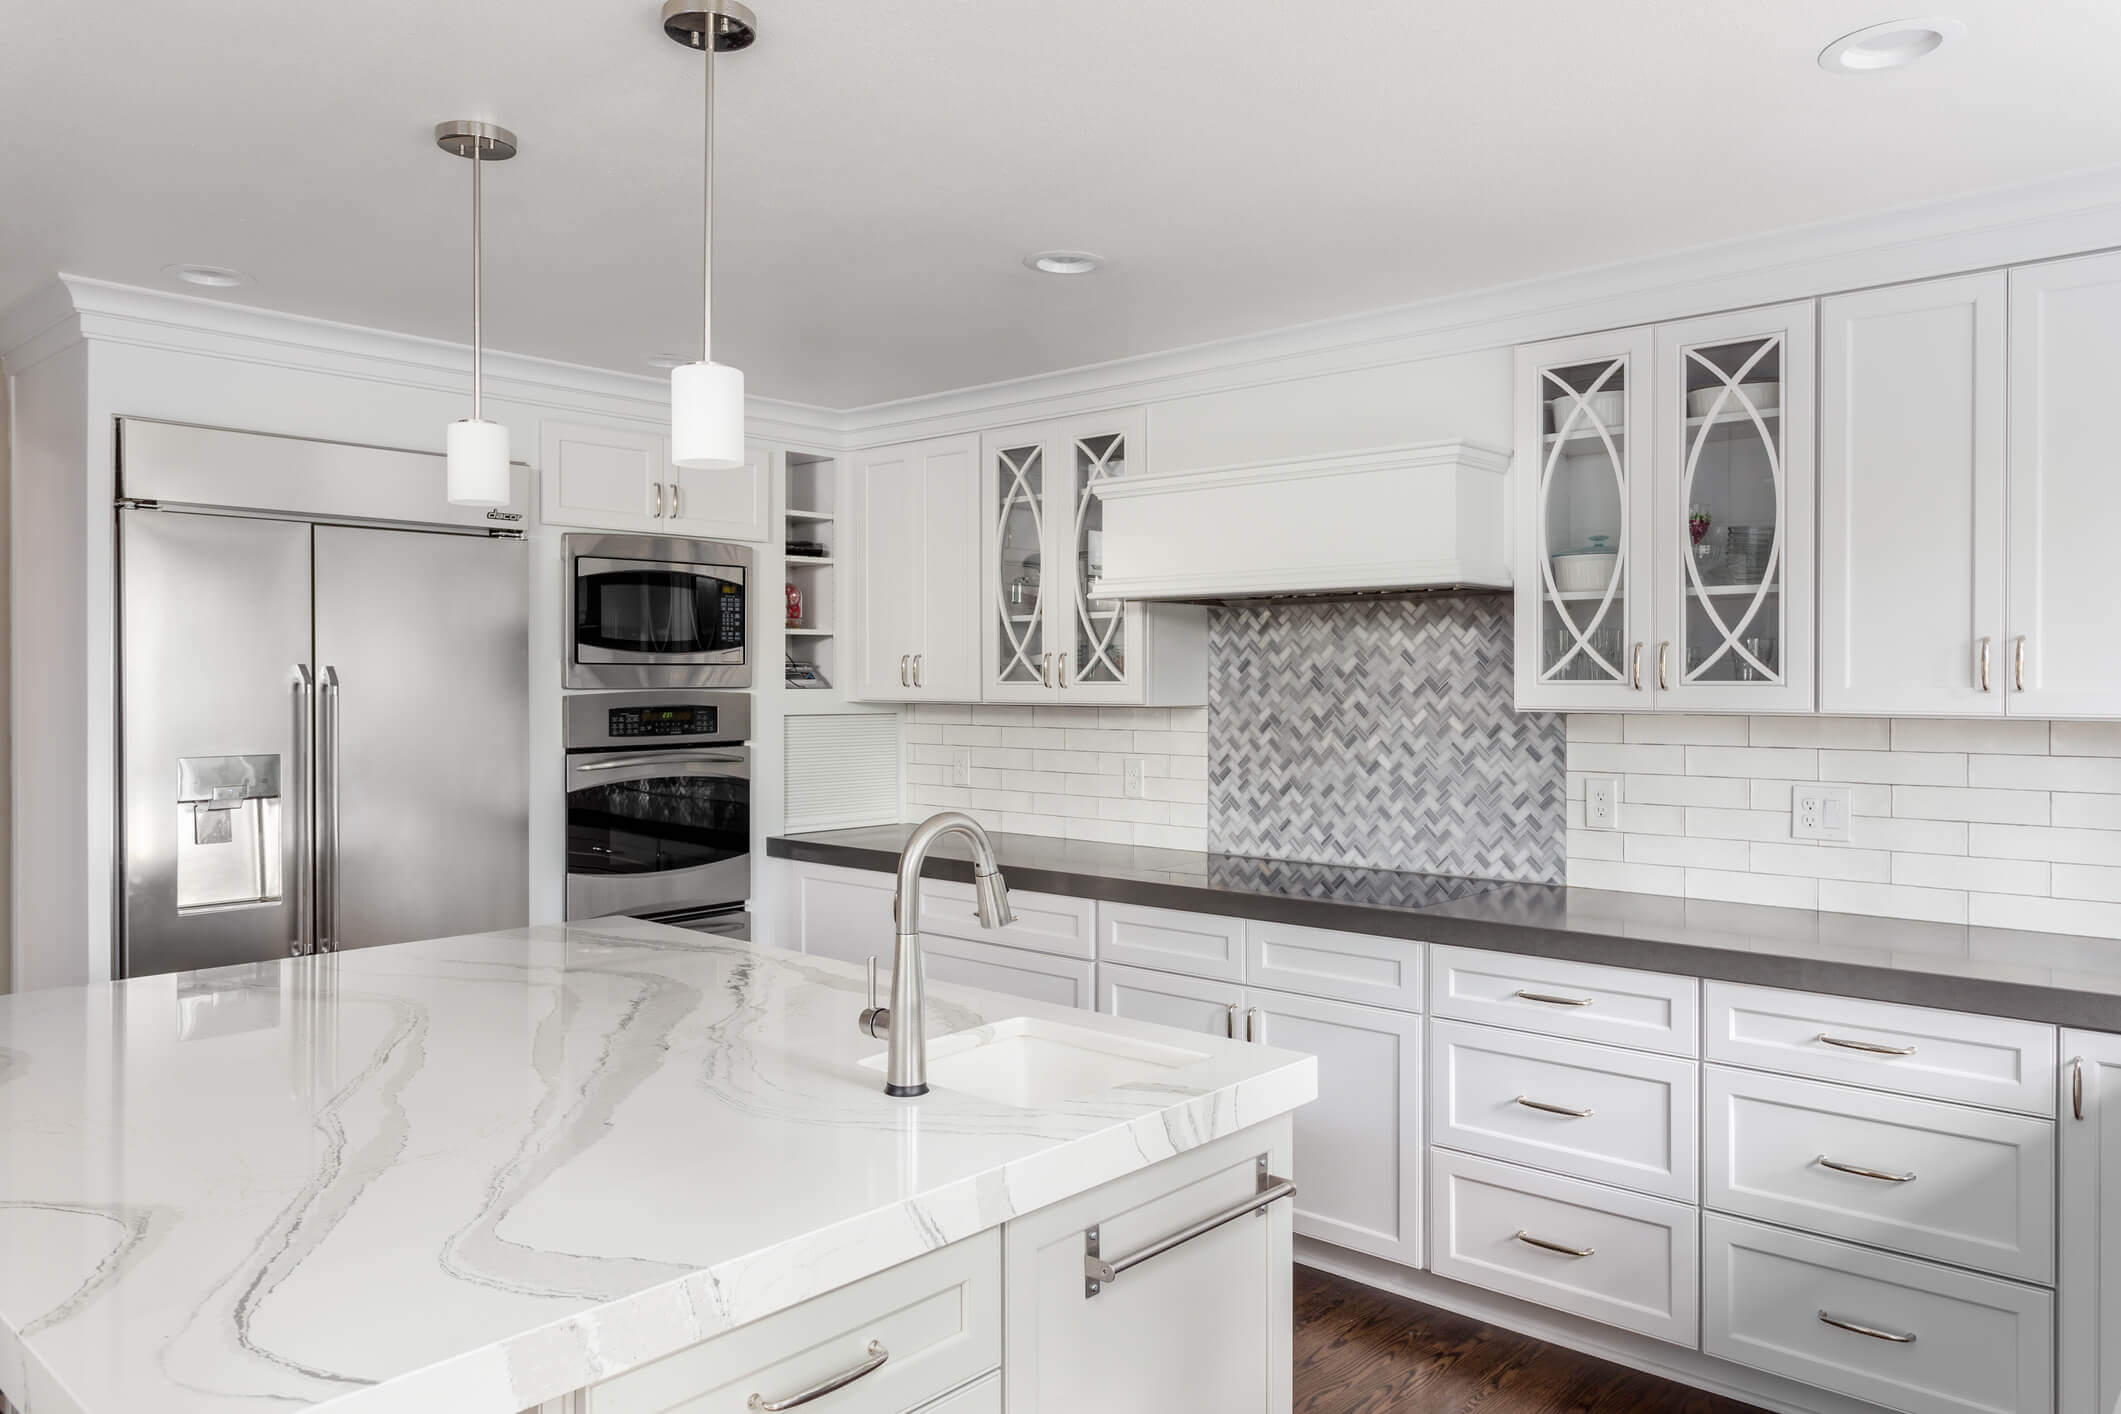 Pros and Cons of a Large Kitchen Island